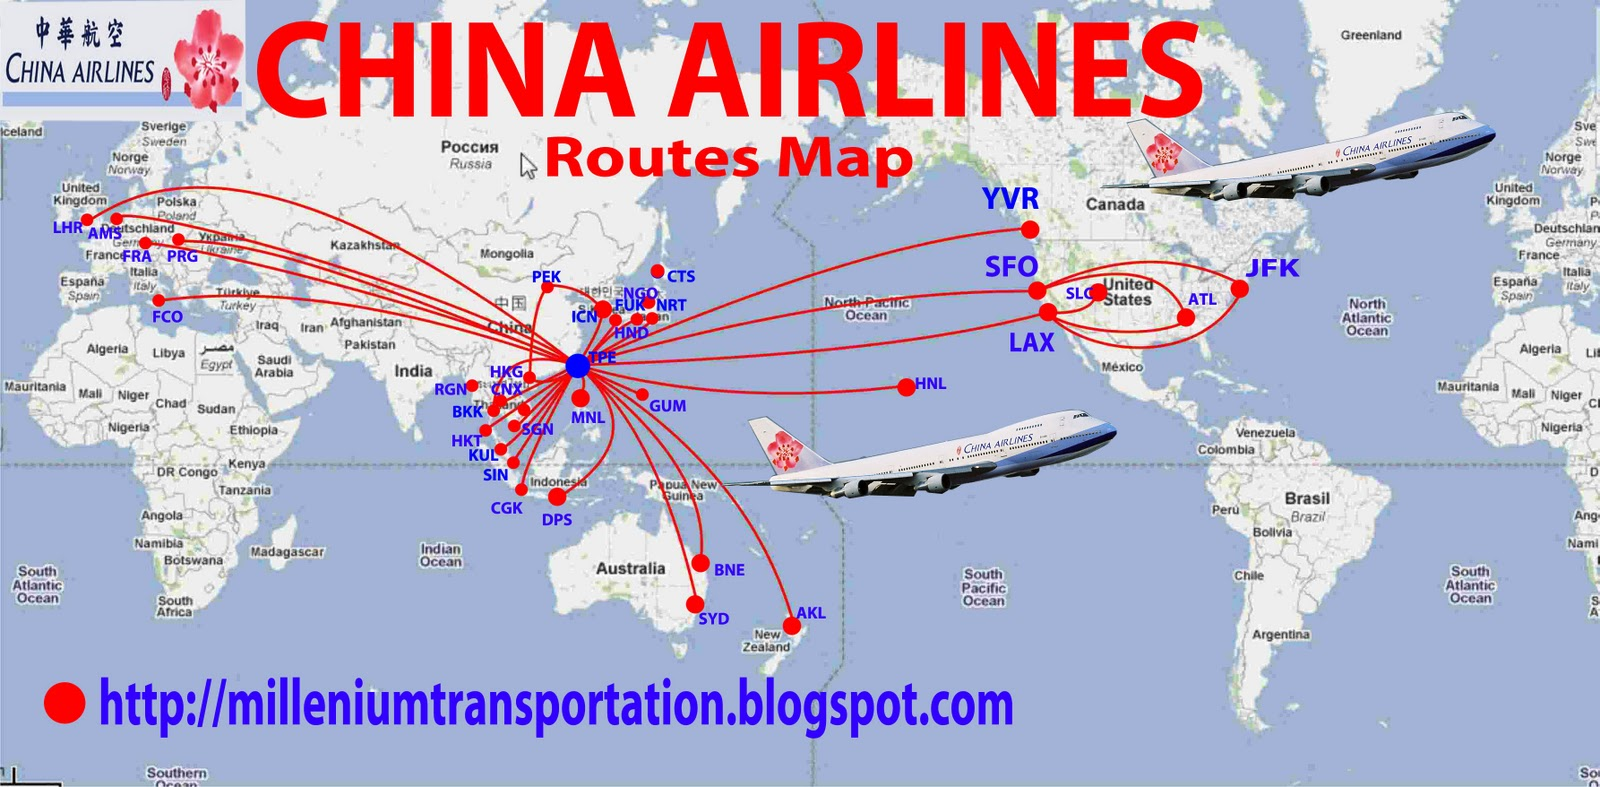 http://2.bp.blogspot.com/-B9BTUHxphvY/Tn1NcSyl9nI/AAAAAAAAAfc/dVtADiK2g9g/s1600/china+Airlines+flight+routes.jpg